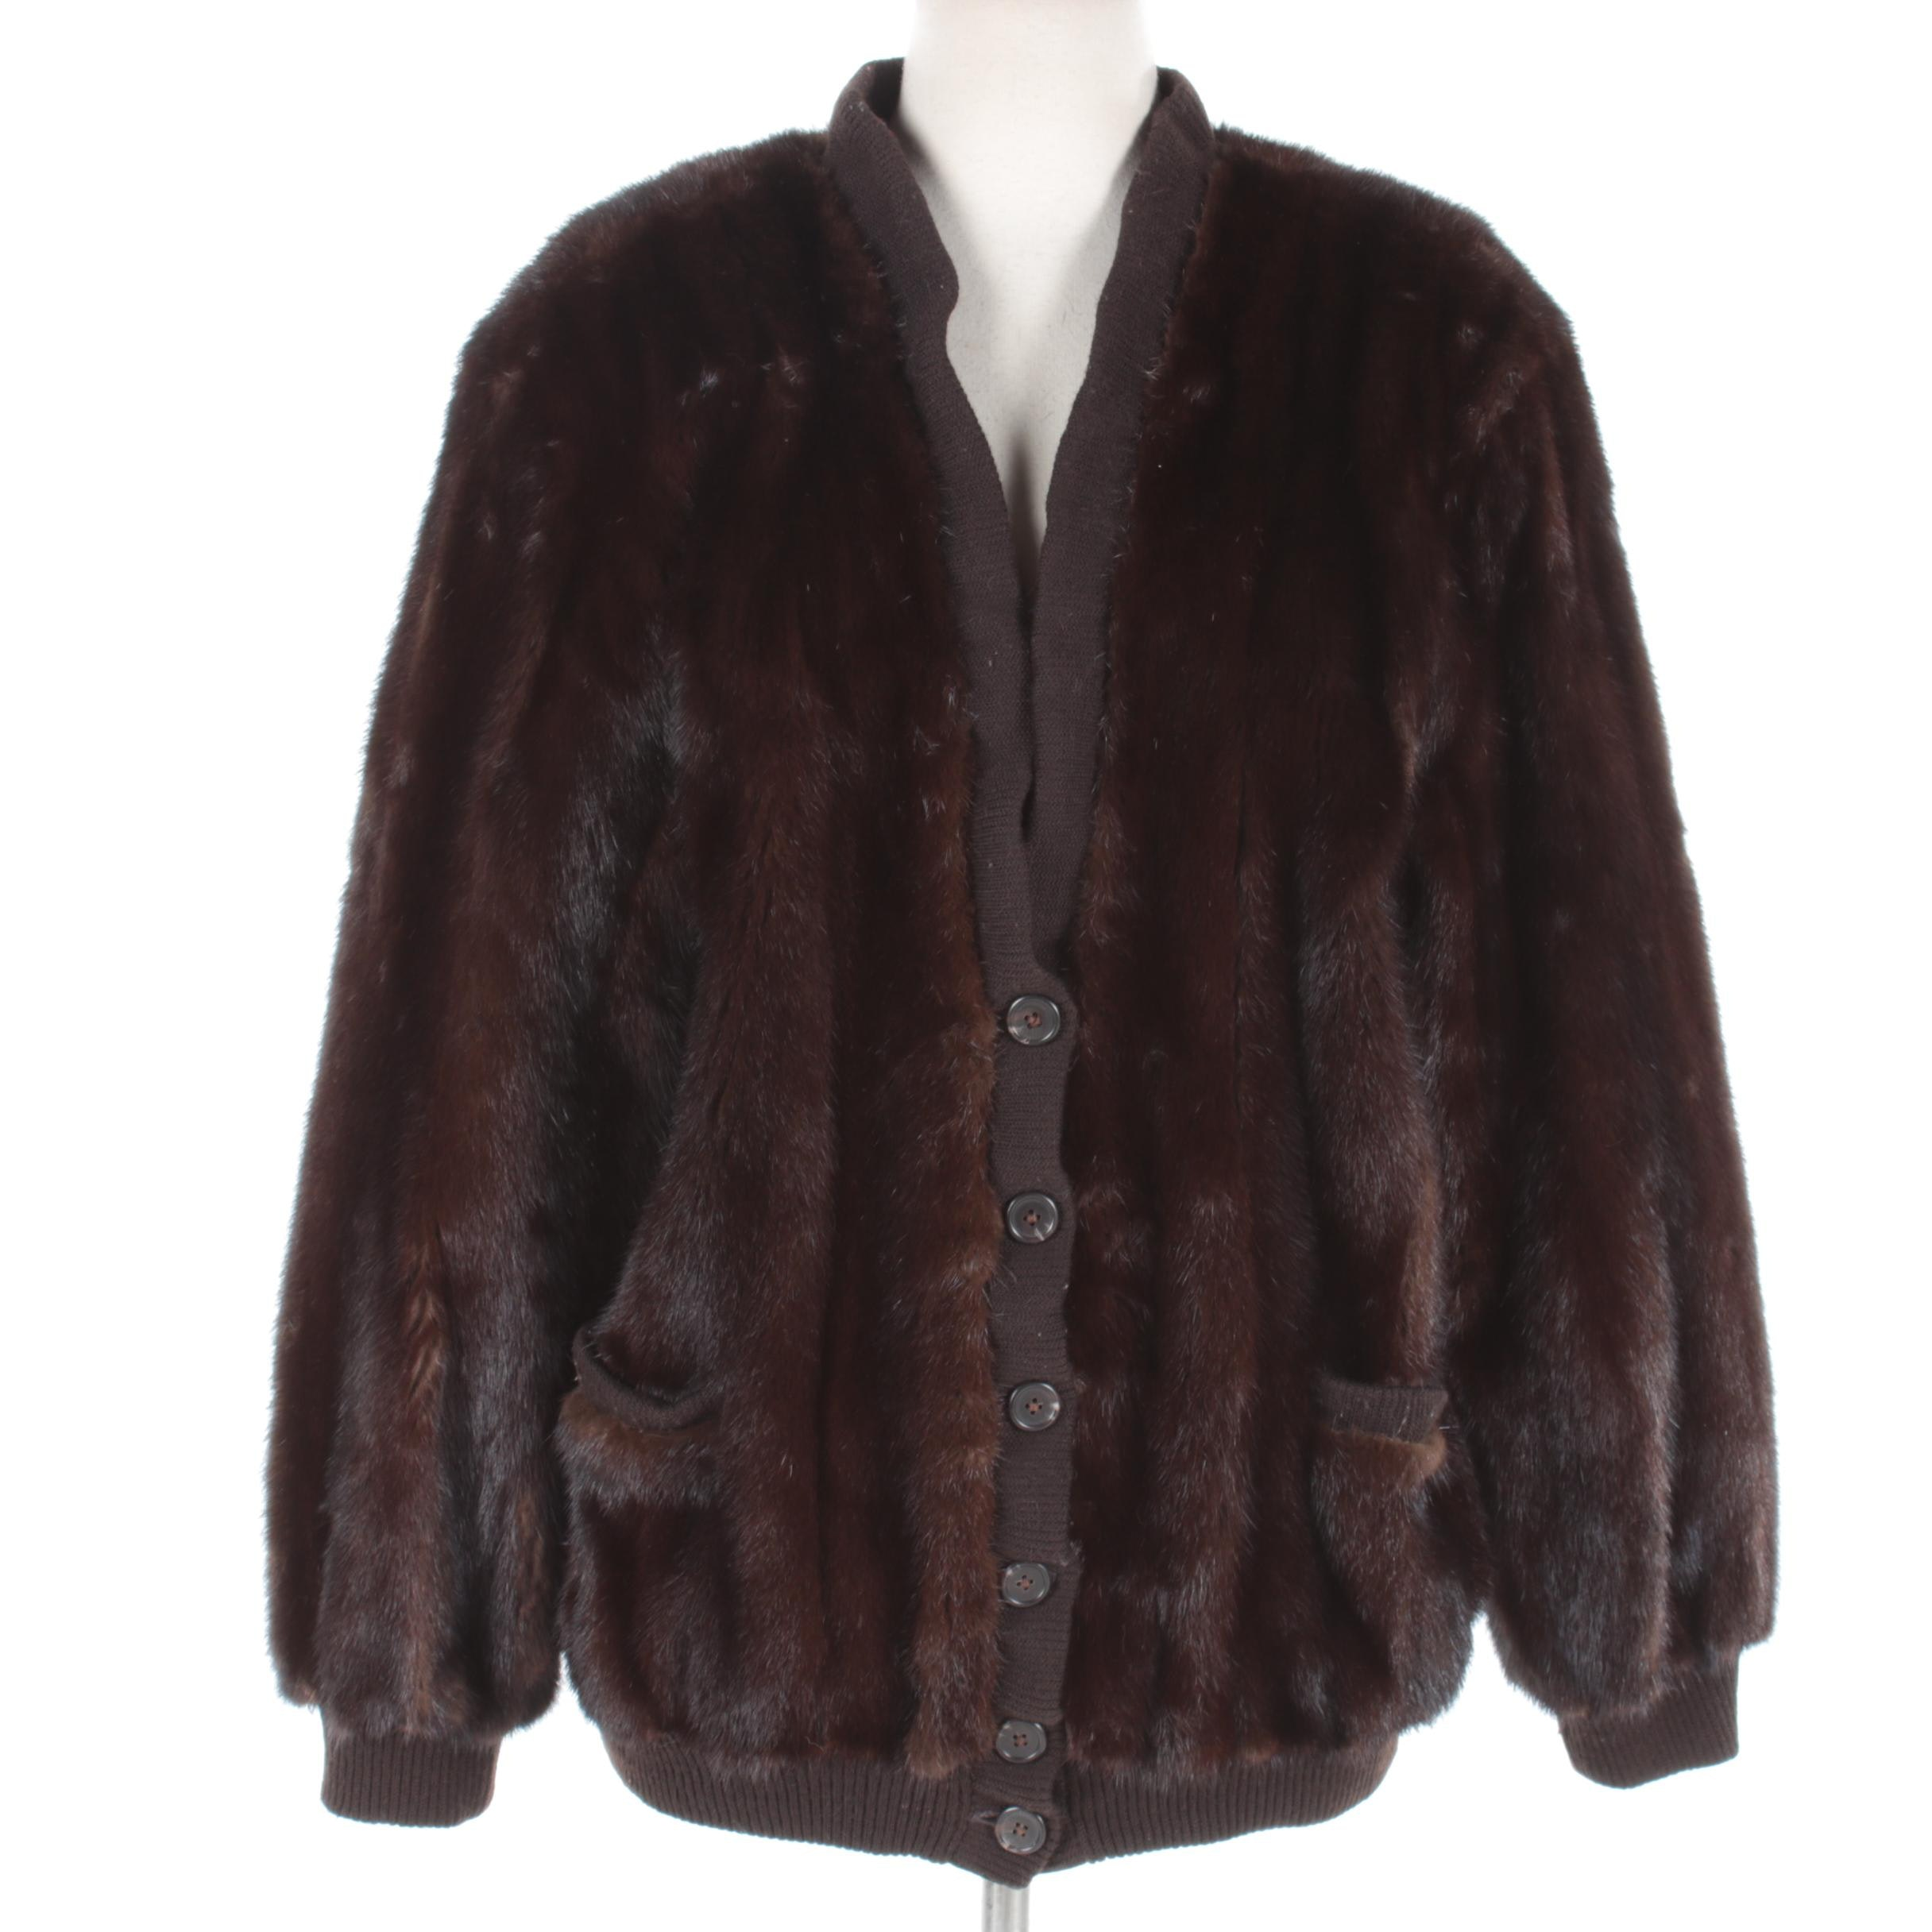 Birger Christensen Mink Fur and Knit Button Front Jacket